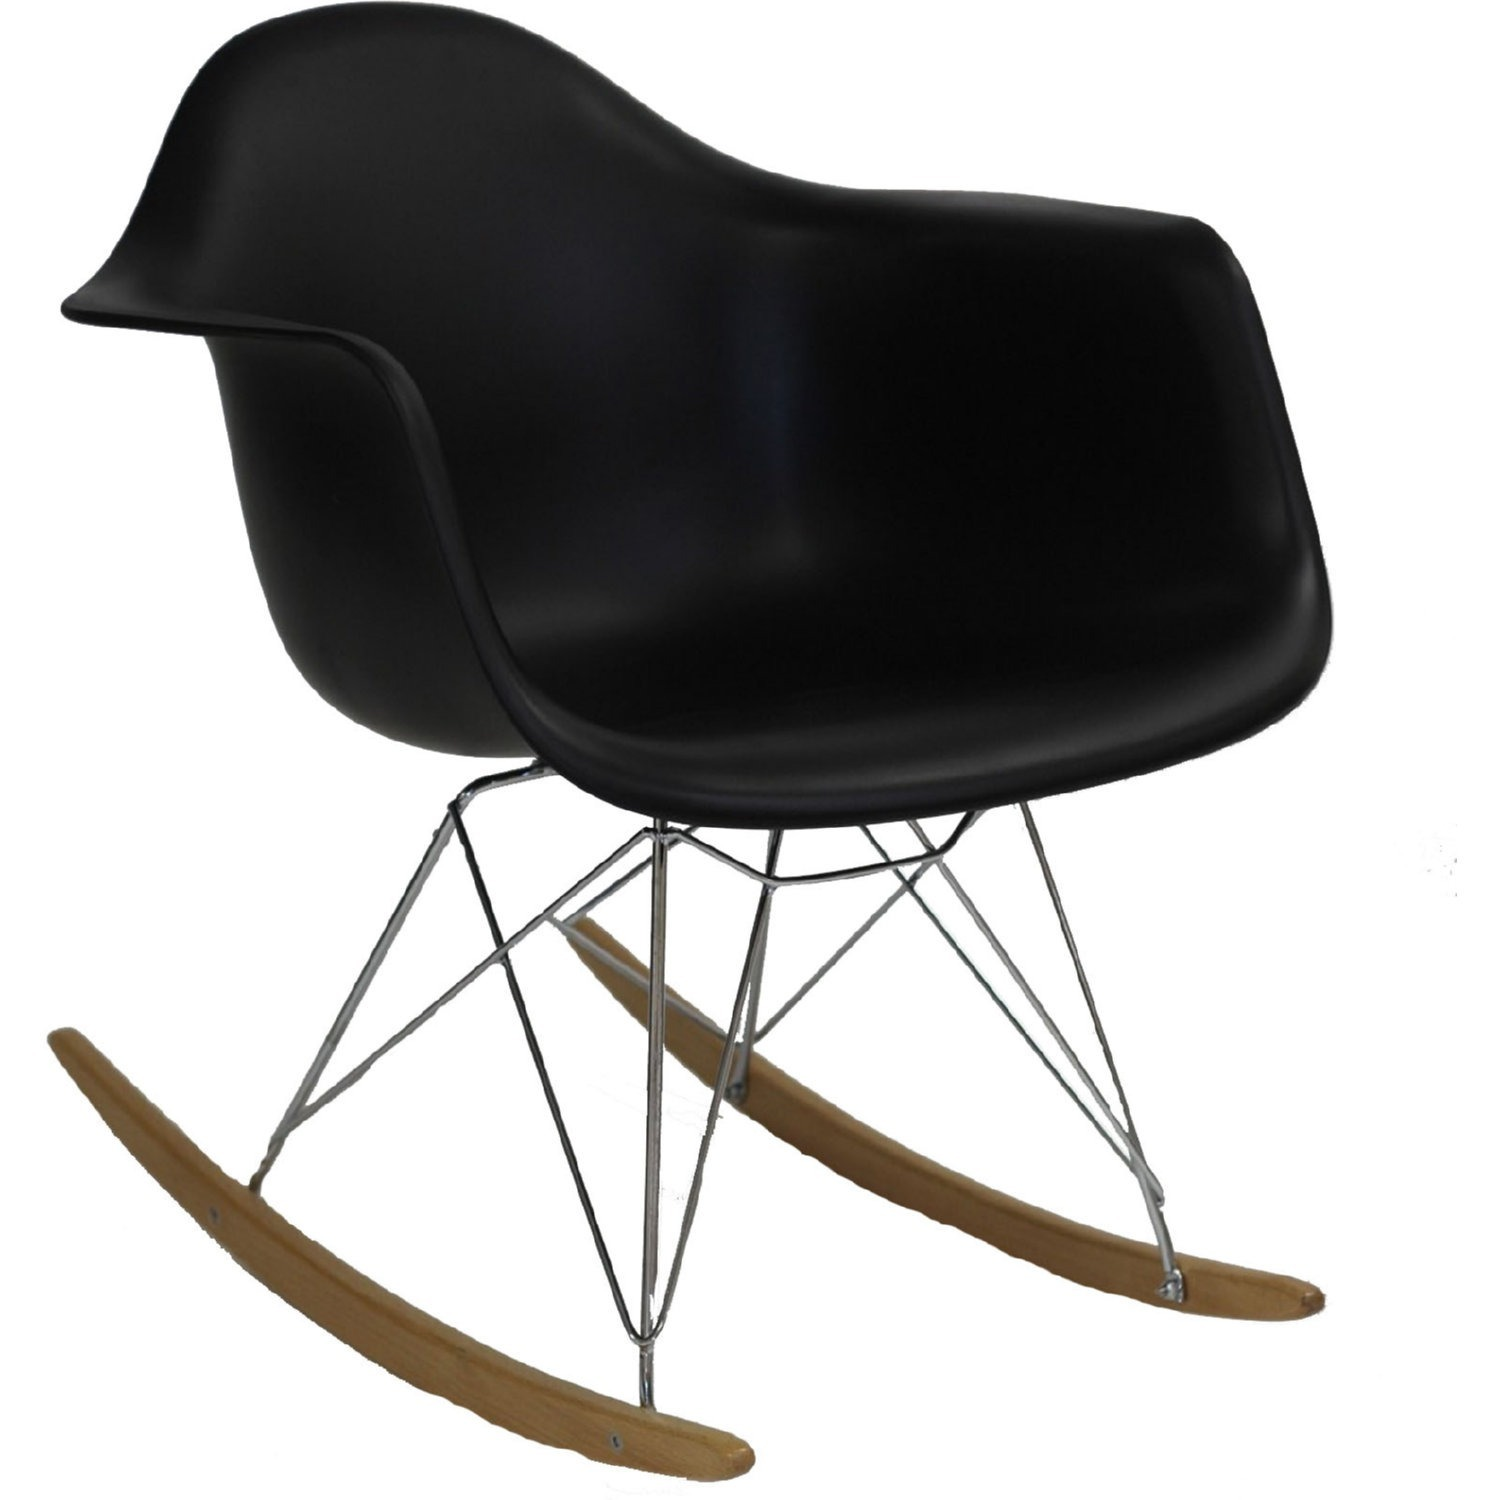 Retro Modern Lounge Chair In Black W/ Chrome Base - image-0